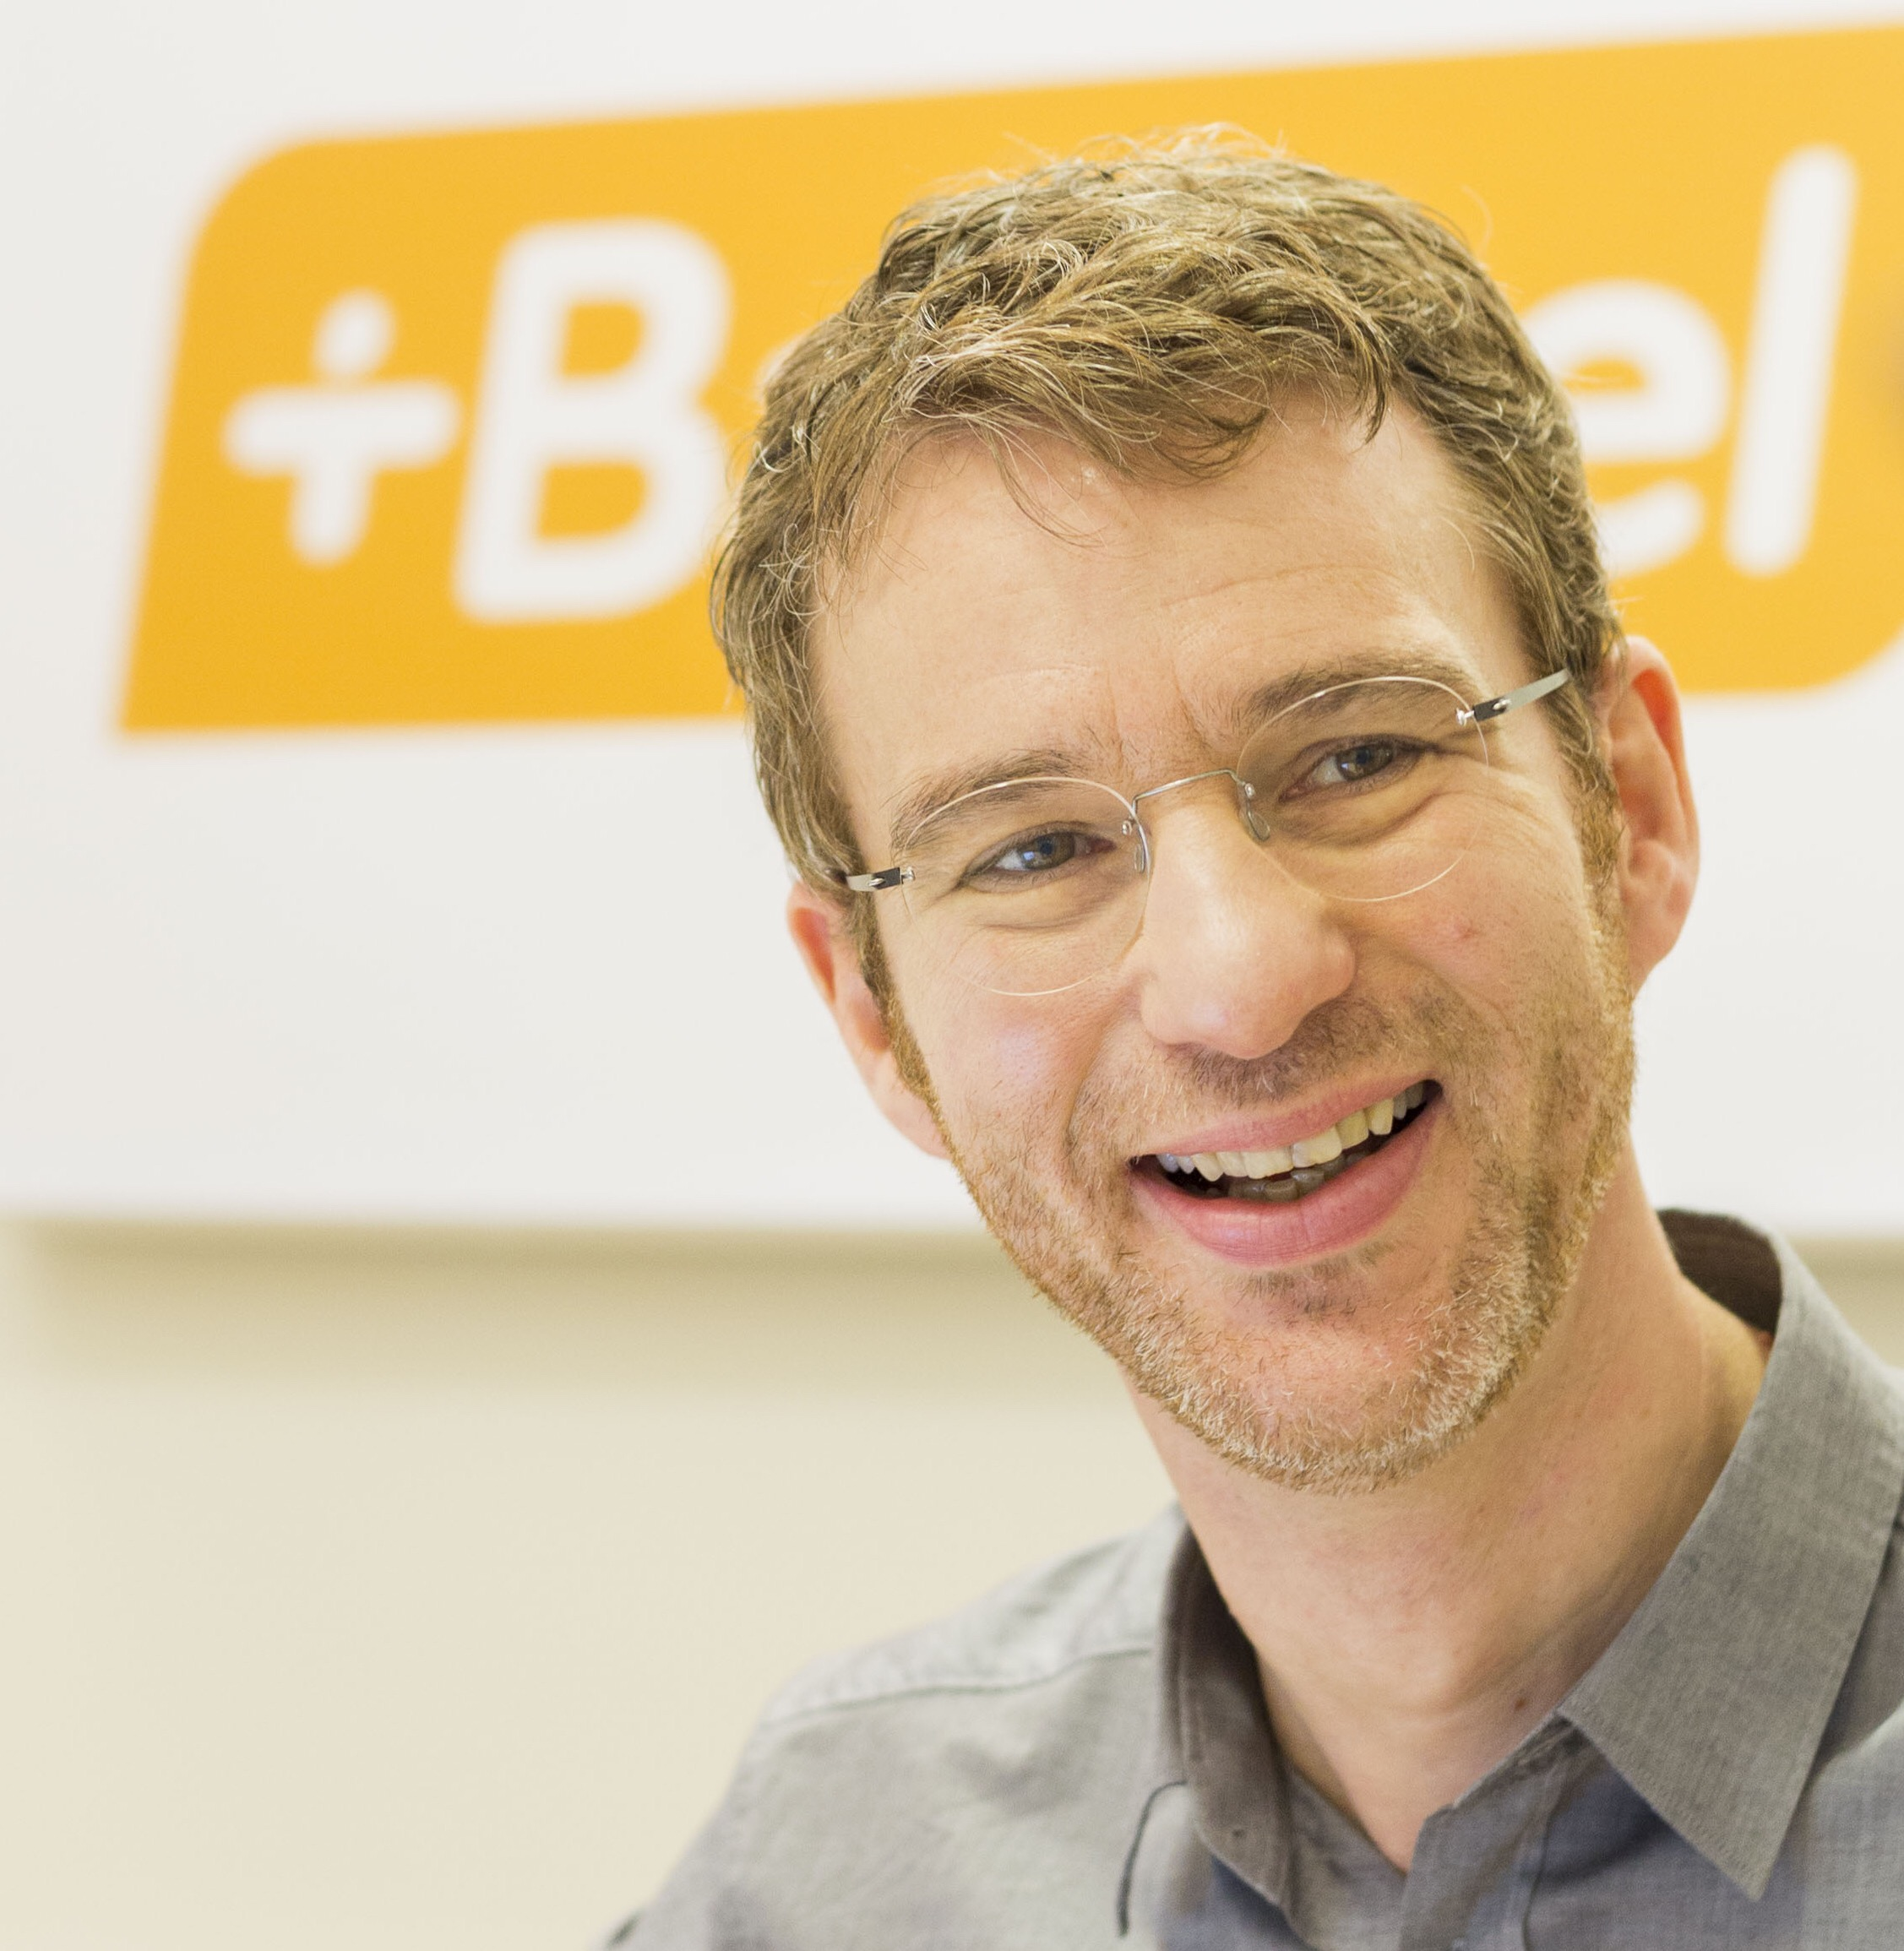 Babbel founder and CEO Markus Witte